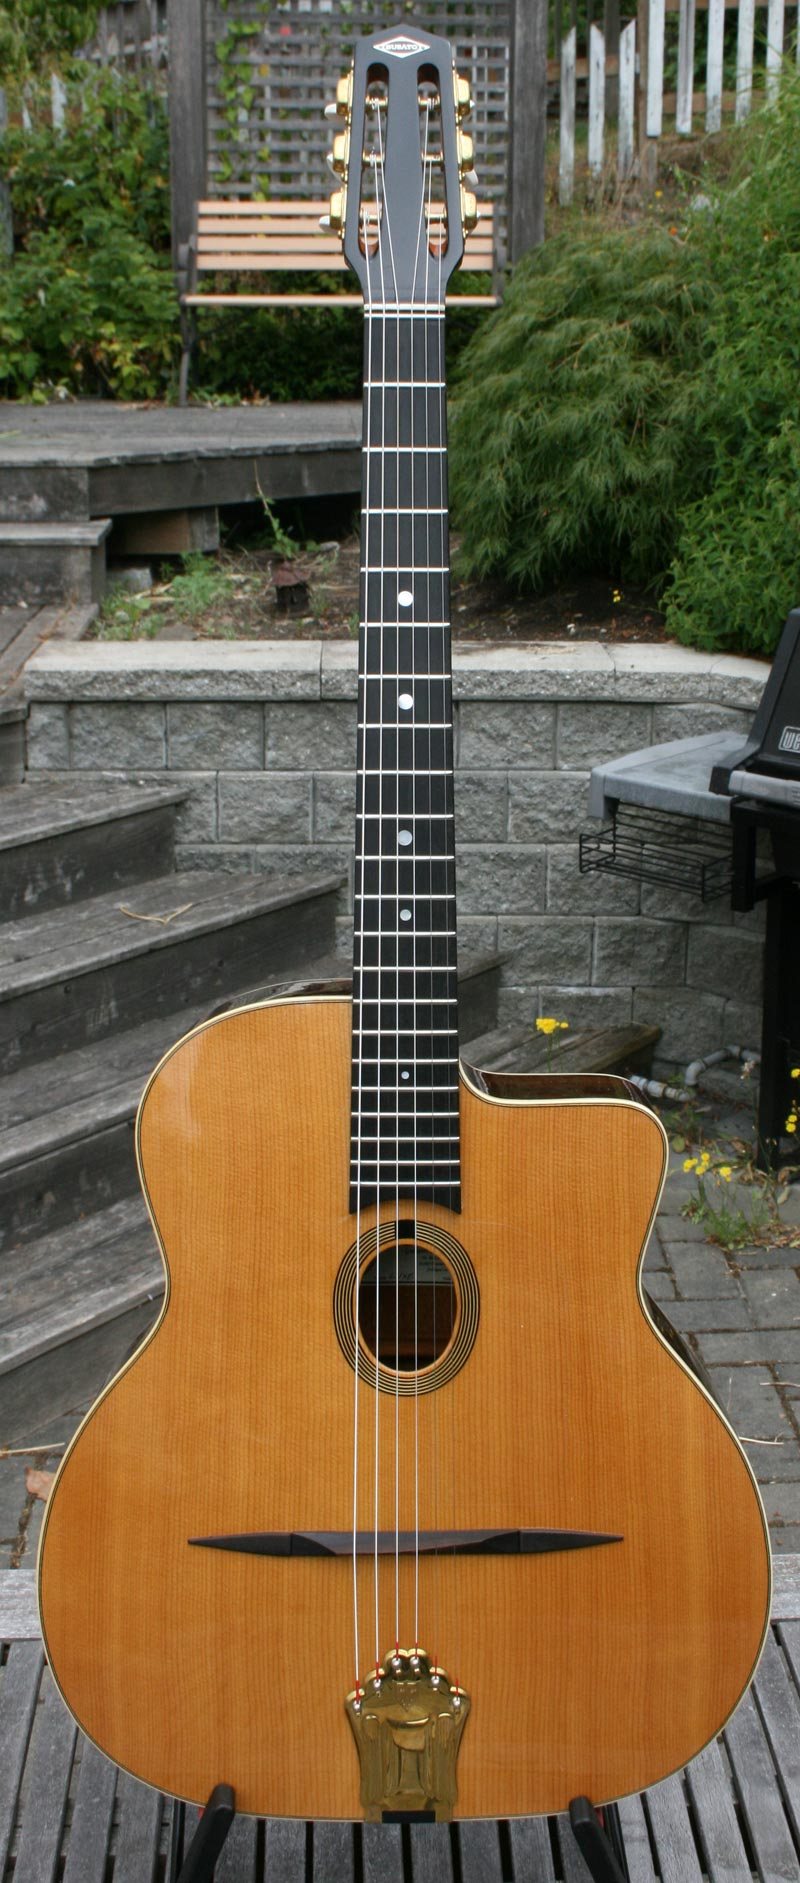 2008 Dupont BUSATO Luxe Oval Hole Guitar (Indian Rosewood Back and Sides) with Hardshell Case